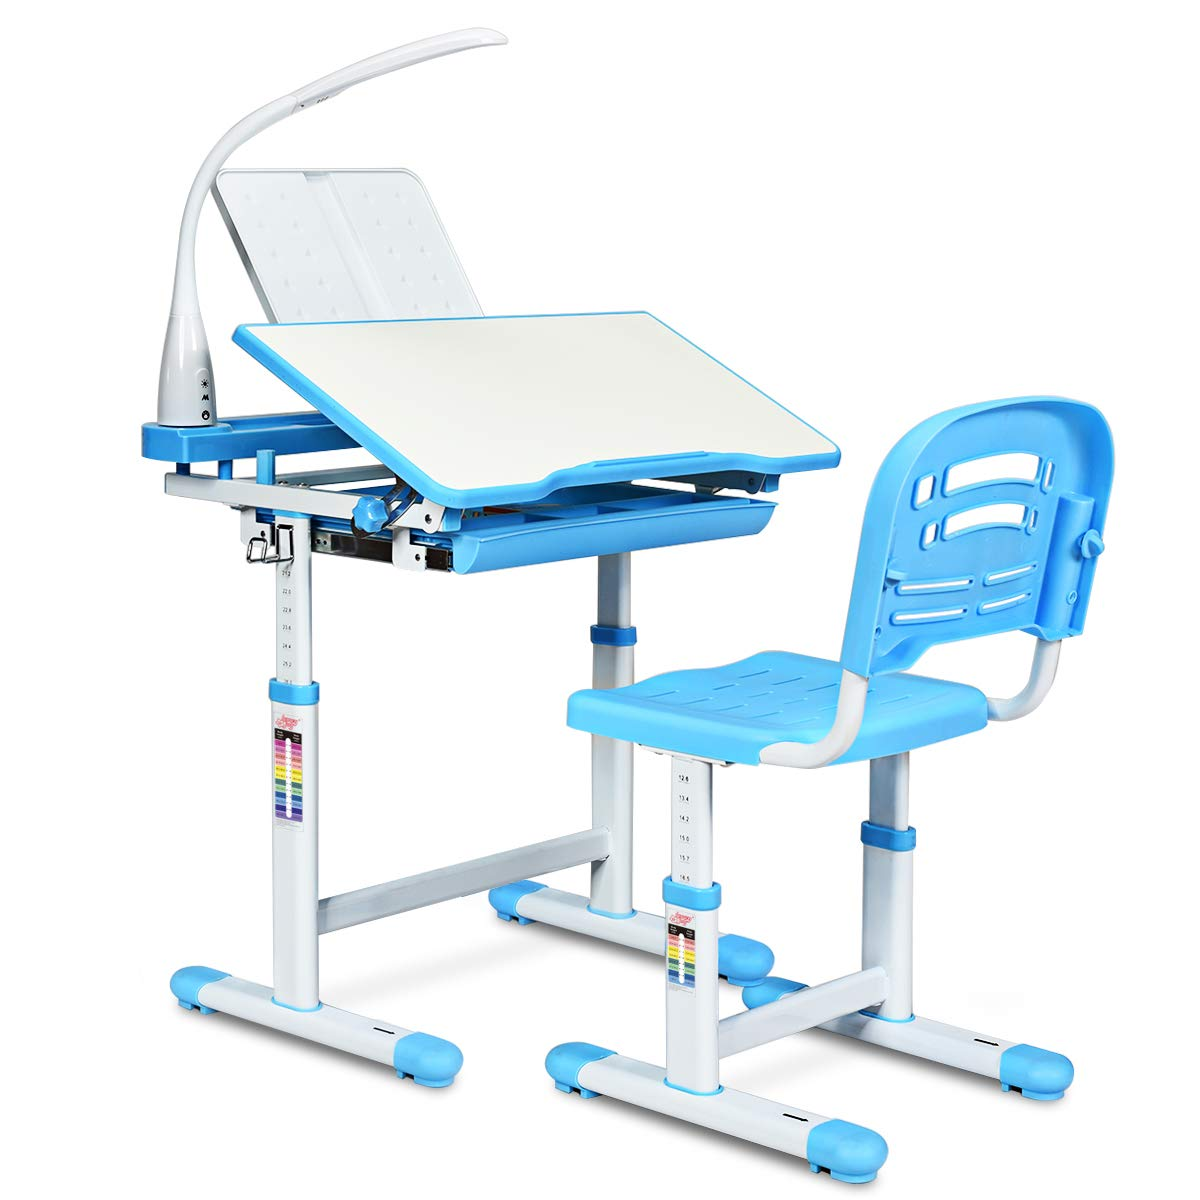 HONEY JOY Kids Desk and Chair Set, Height Adjustable Table with Tilting Desktop, LED Light, Book Stand, Storage Drawer and Metal Hook, Multifunctional School Study Workstation for Children (Blue) by HONEY JOY